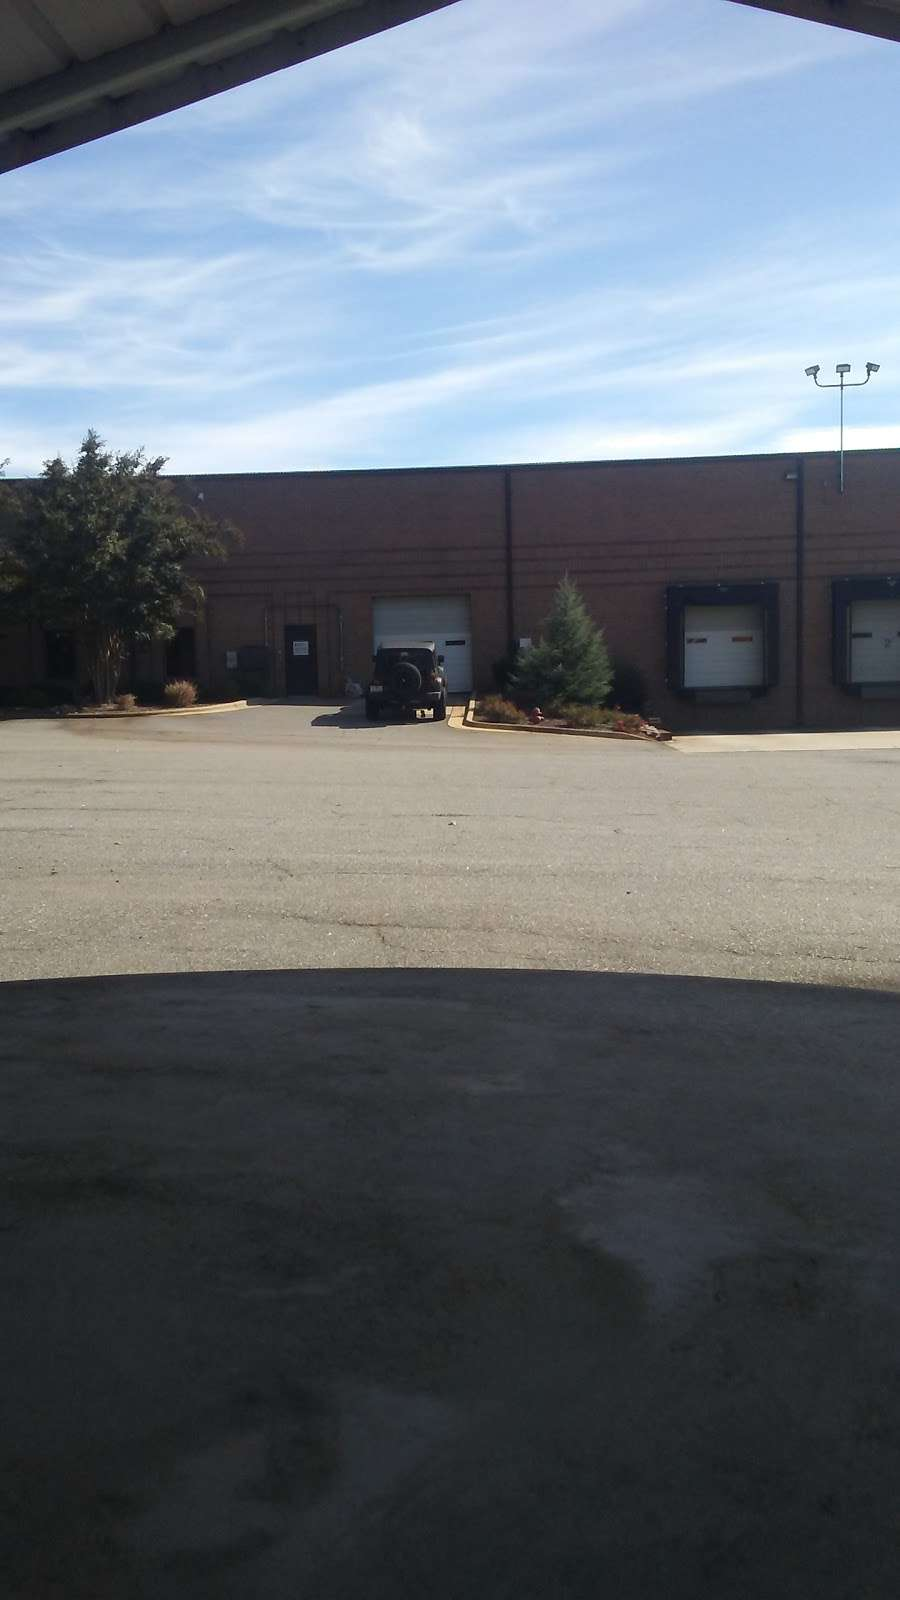 Penske Truck Rental - moving company  | Photo 9 of 10 | Address: 1215 4th St SW, Conover, NC 28613, USA | Phone: (828) 465-5499